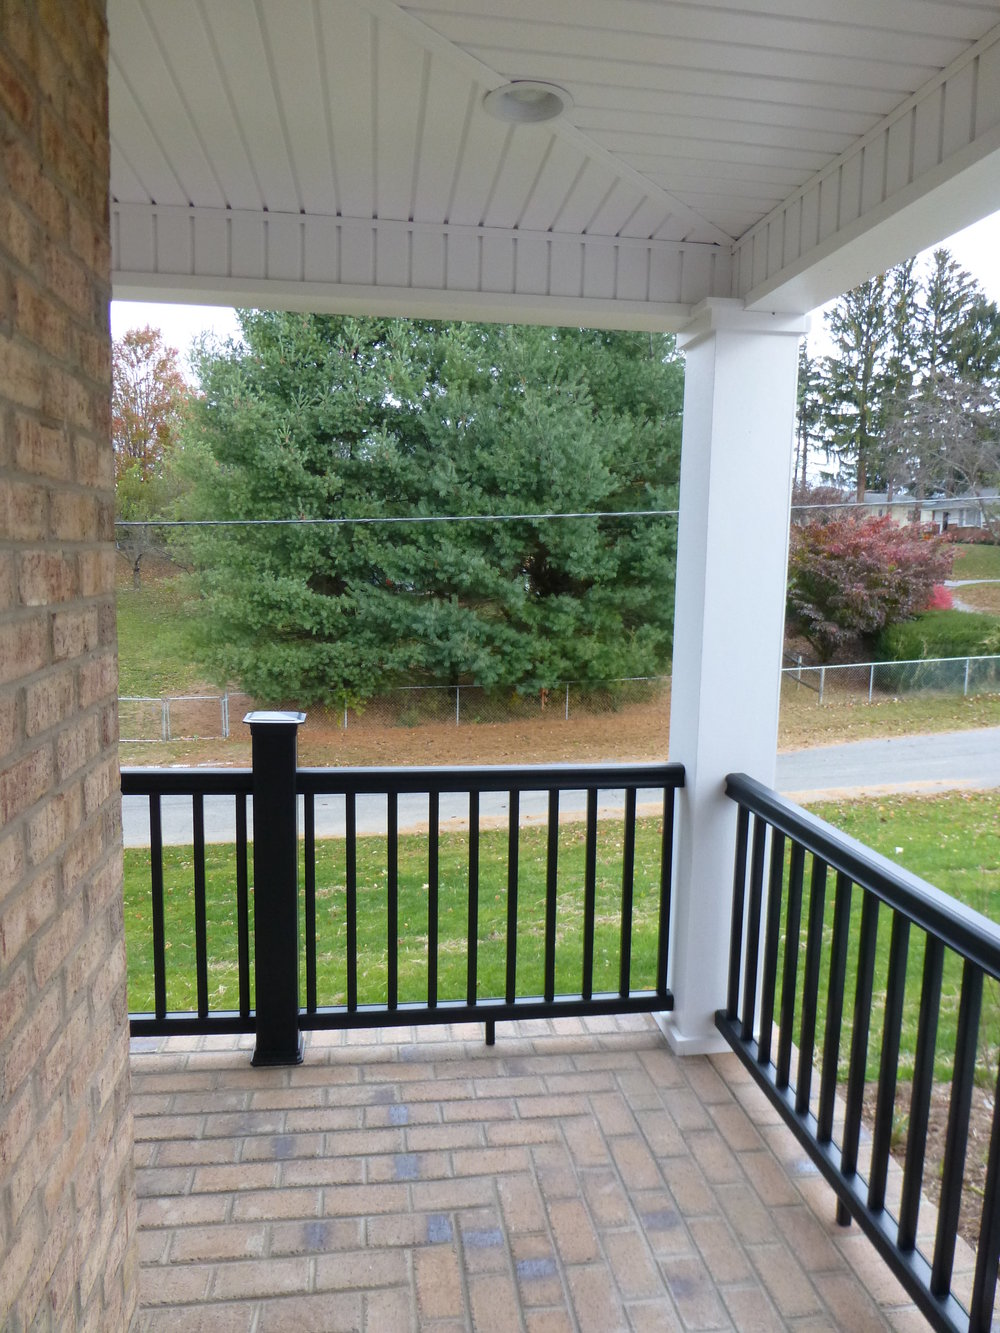 14 Kentwood Dr Front Porch.JPG